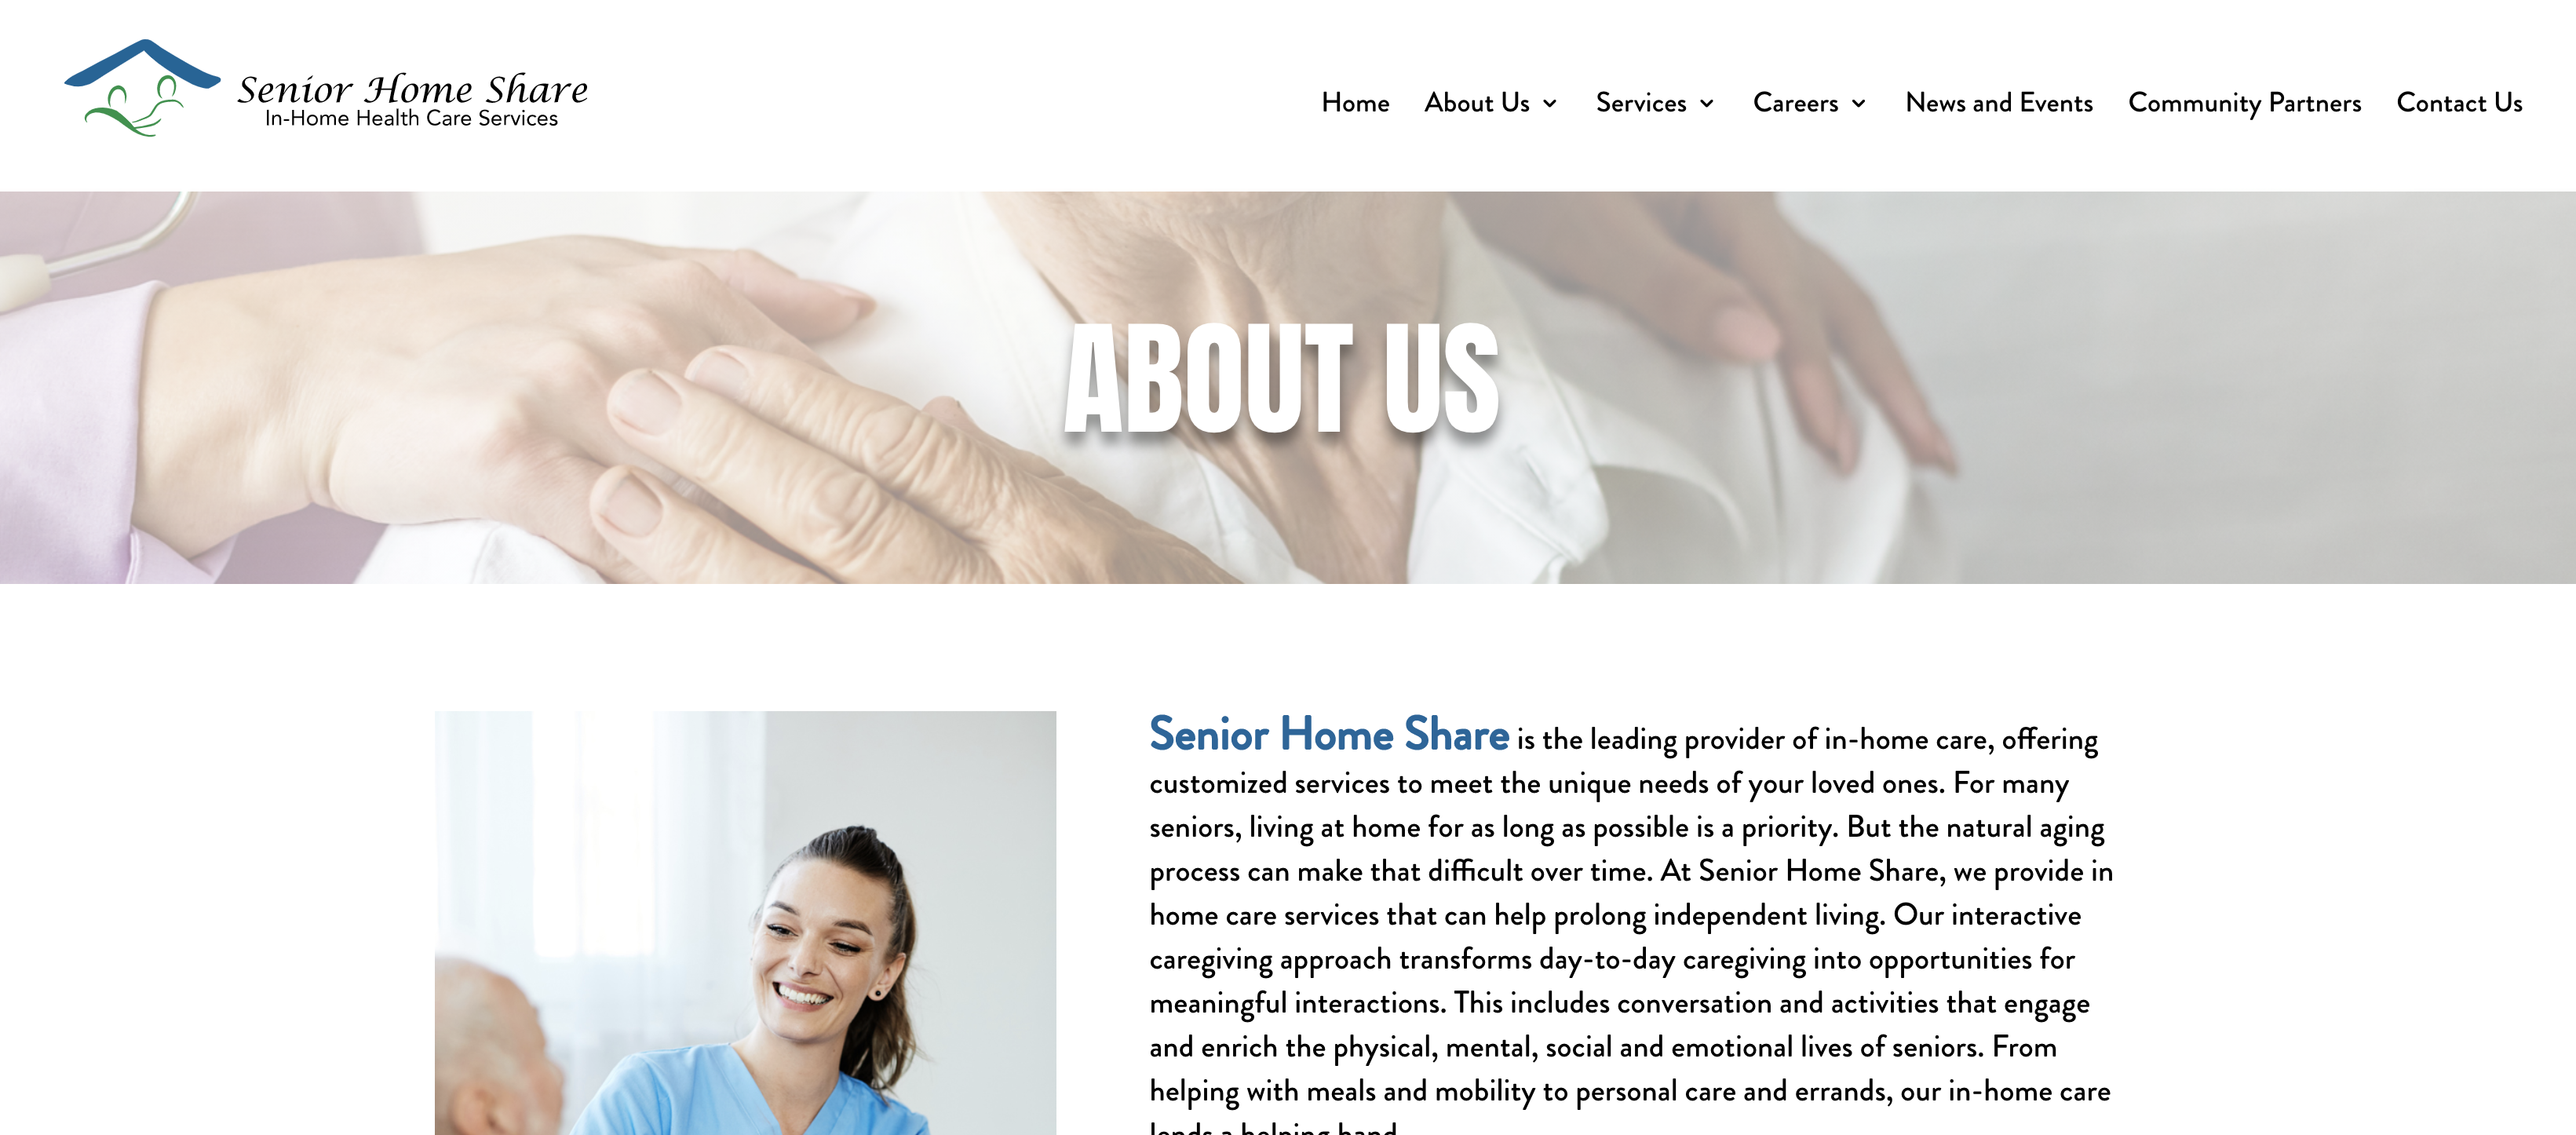 About Us Website Page